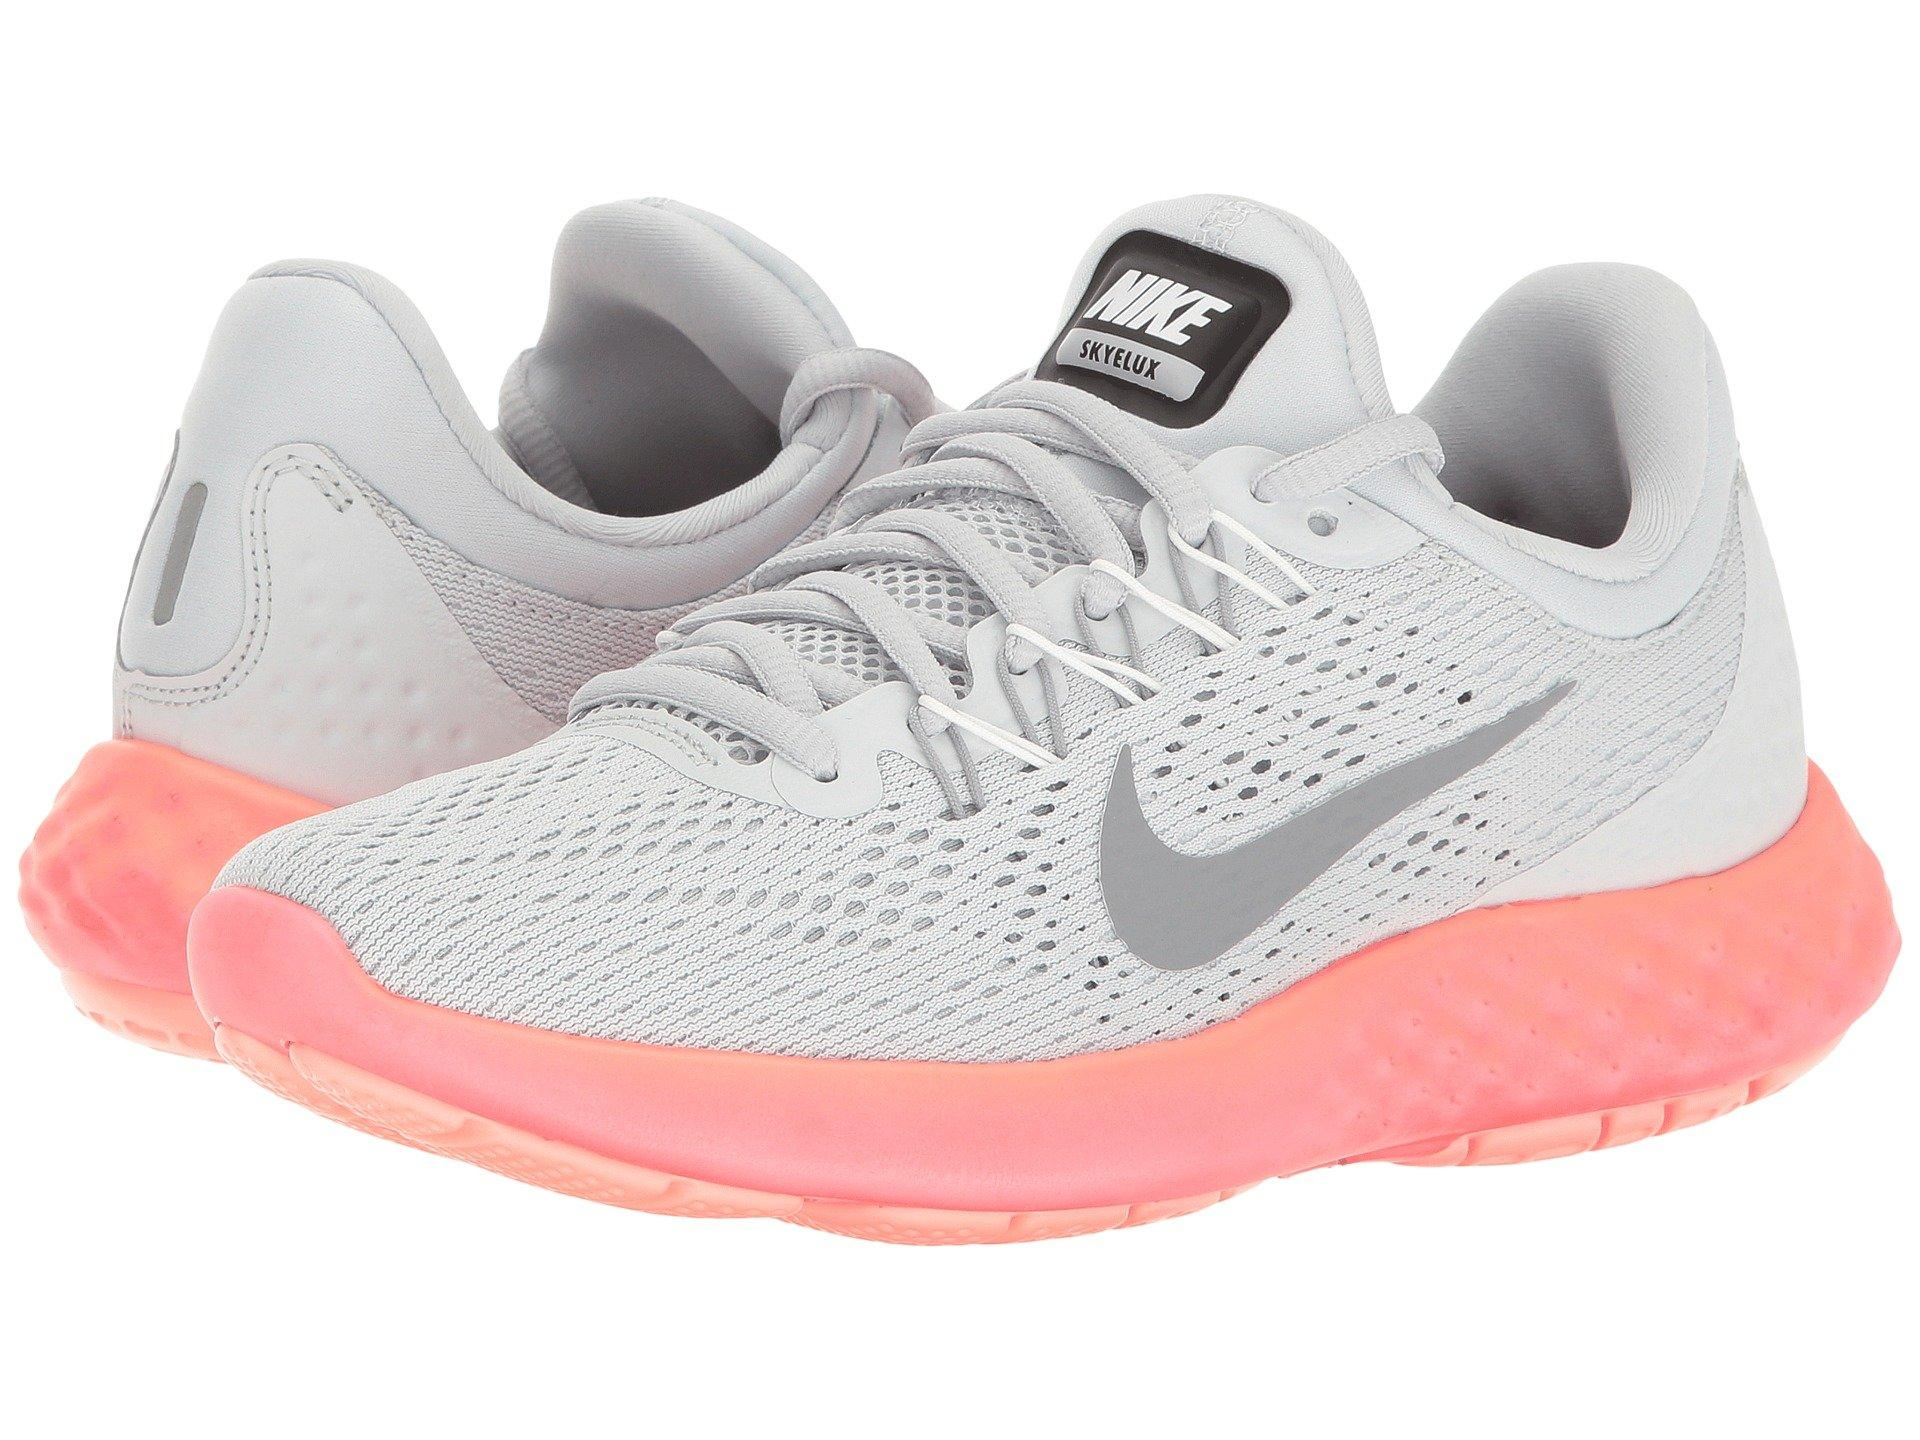 hot sale online 9861d 69a43 Nike Lunar Skyelux In Pure Platinum/Stealth/Summit White   ModeSens